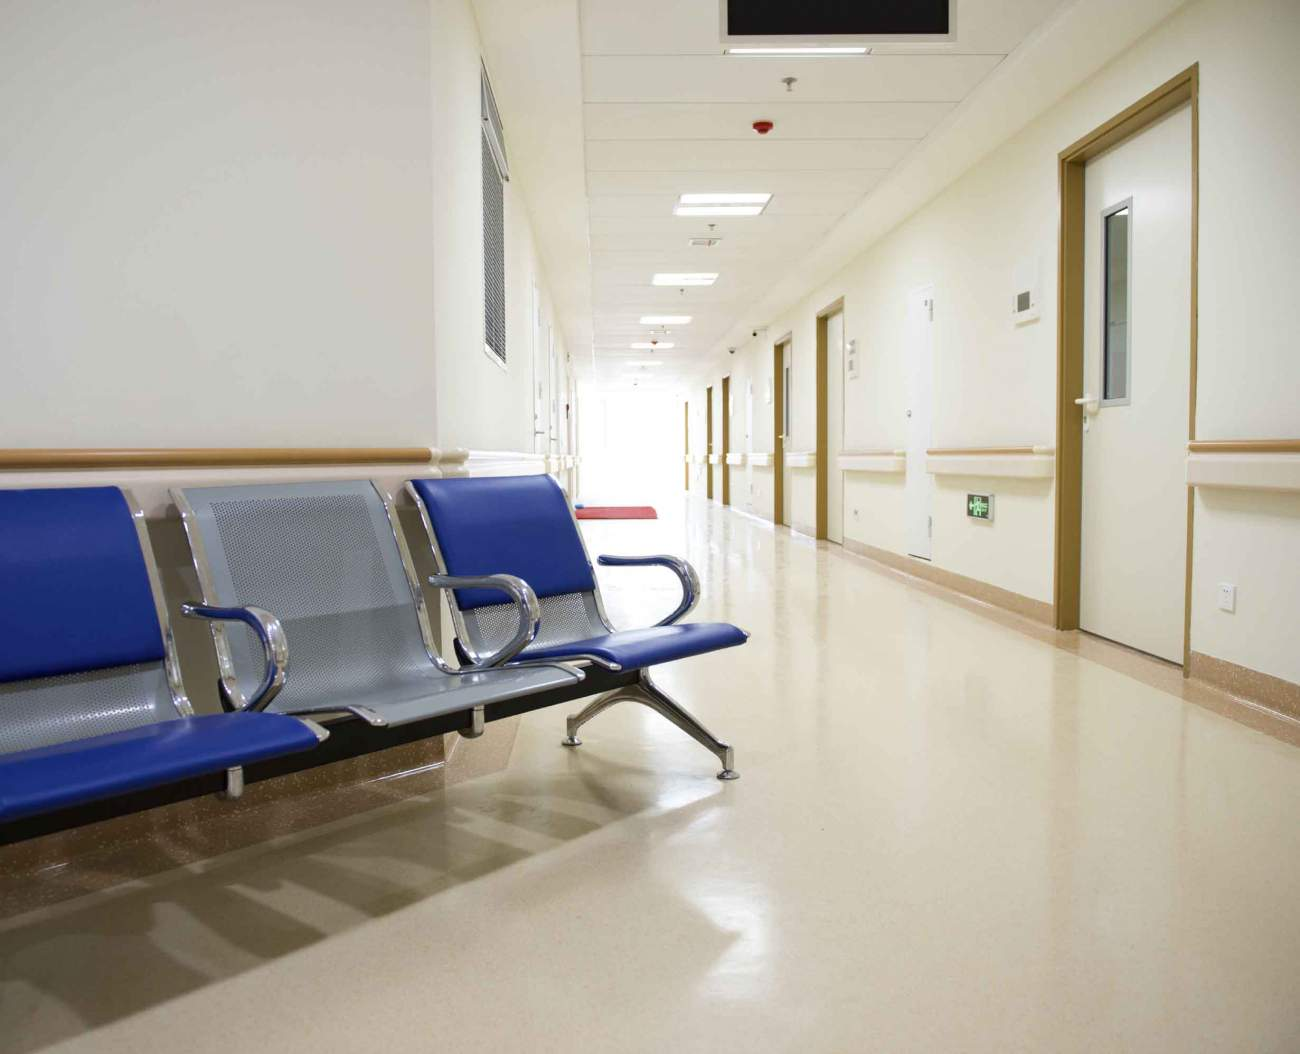 Hospital Corridor With Small Waiting Area